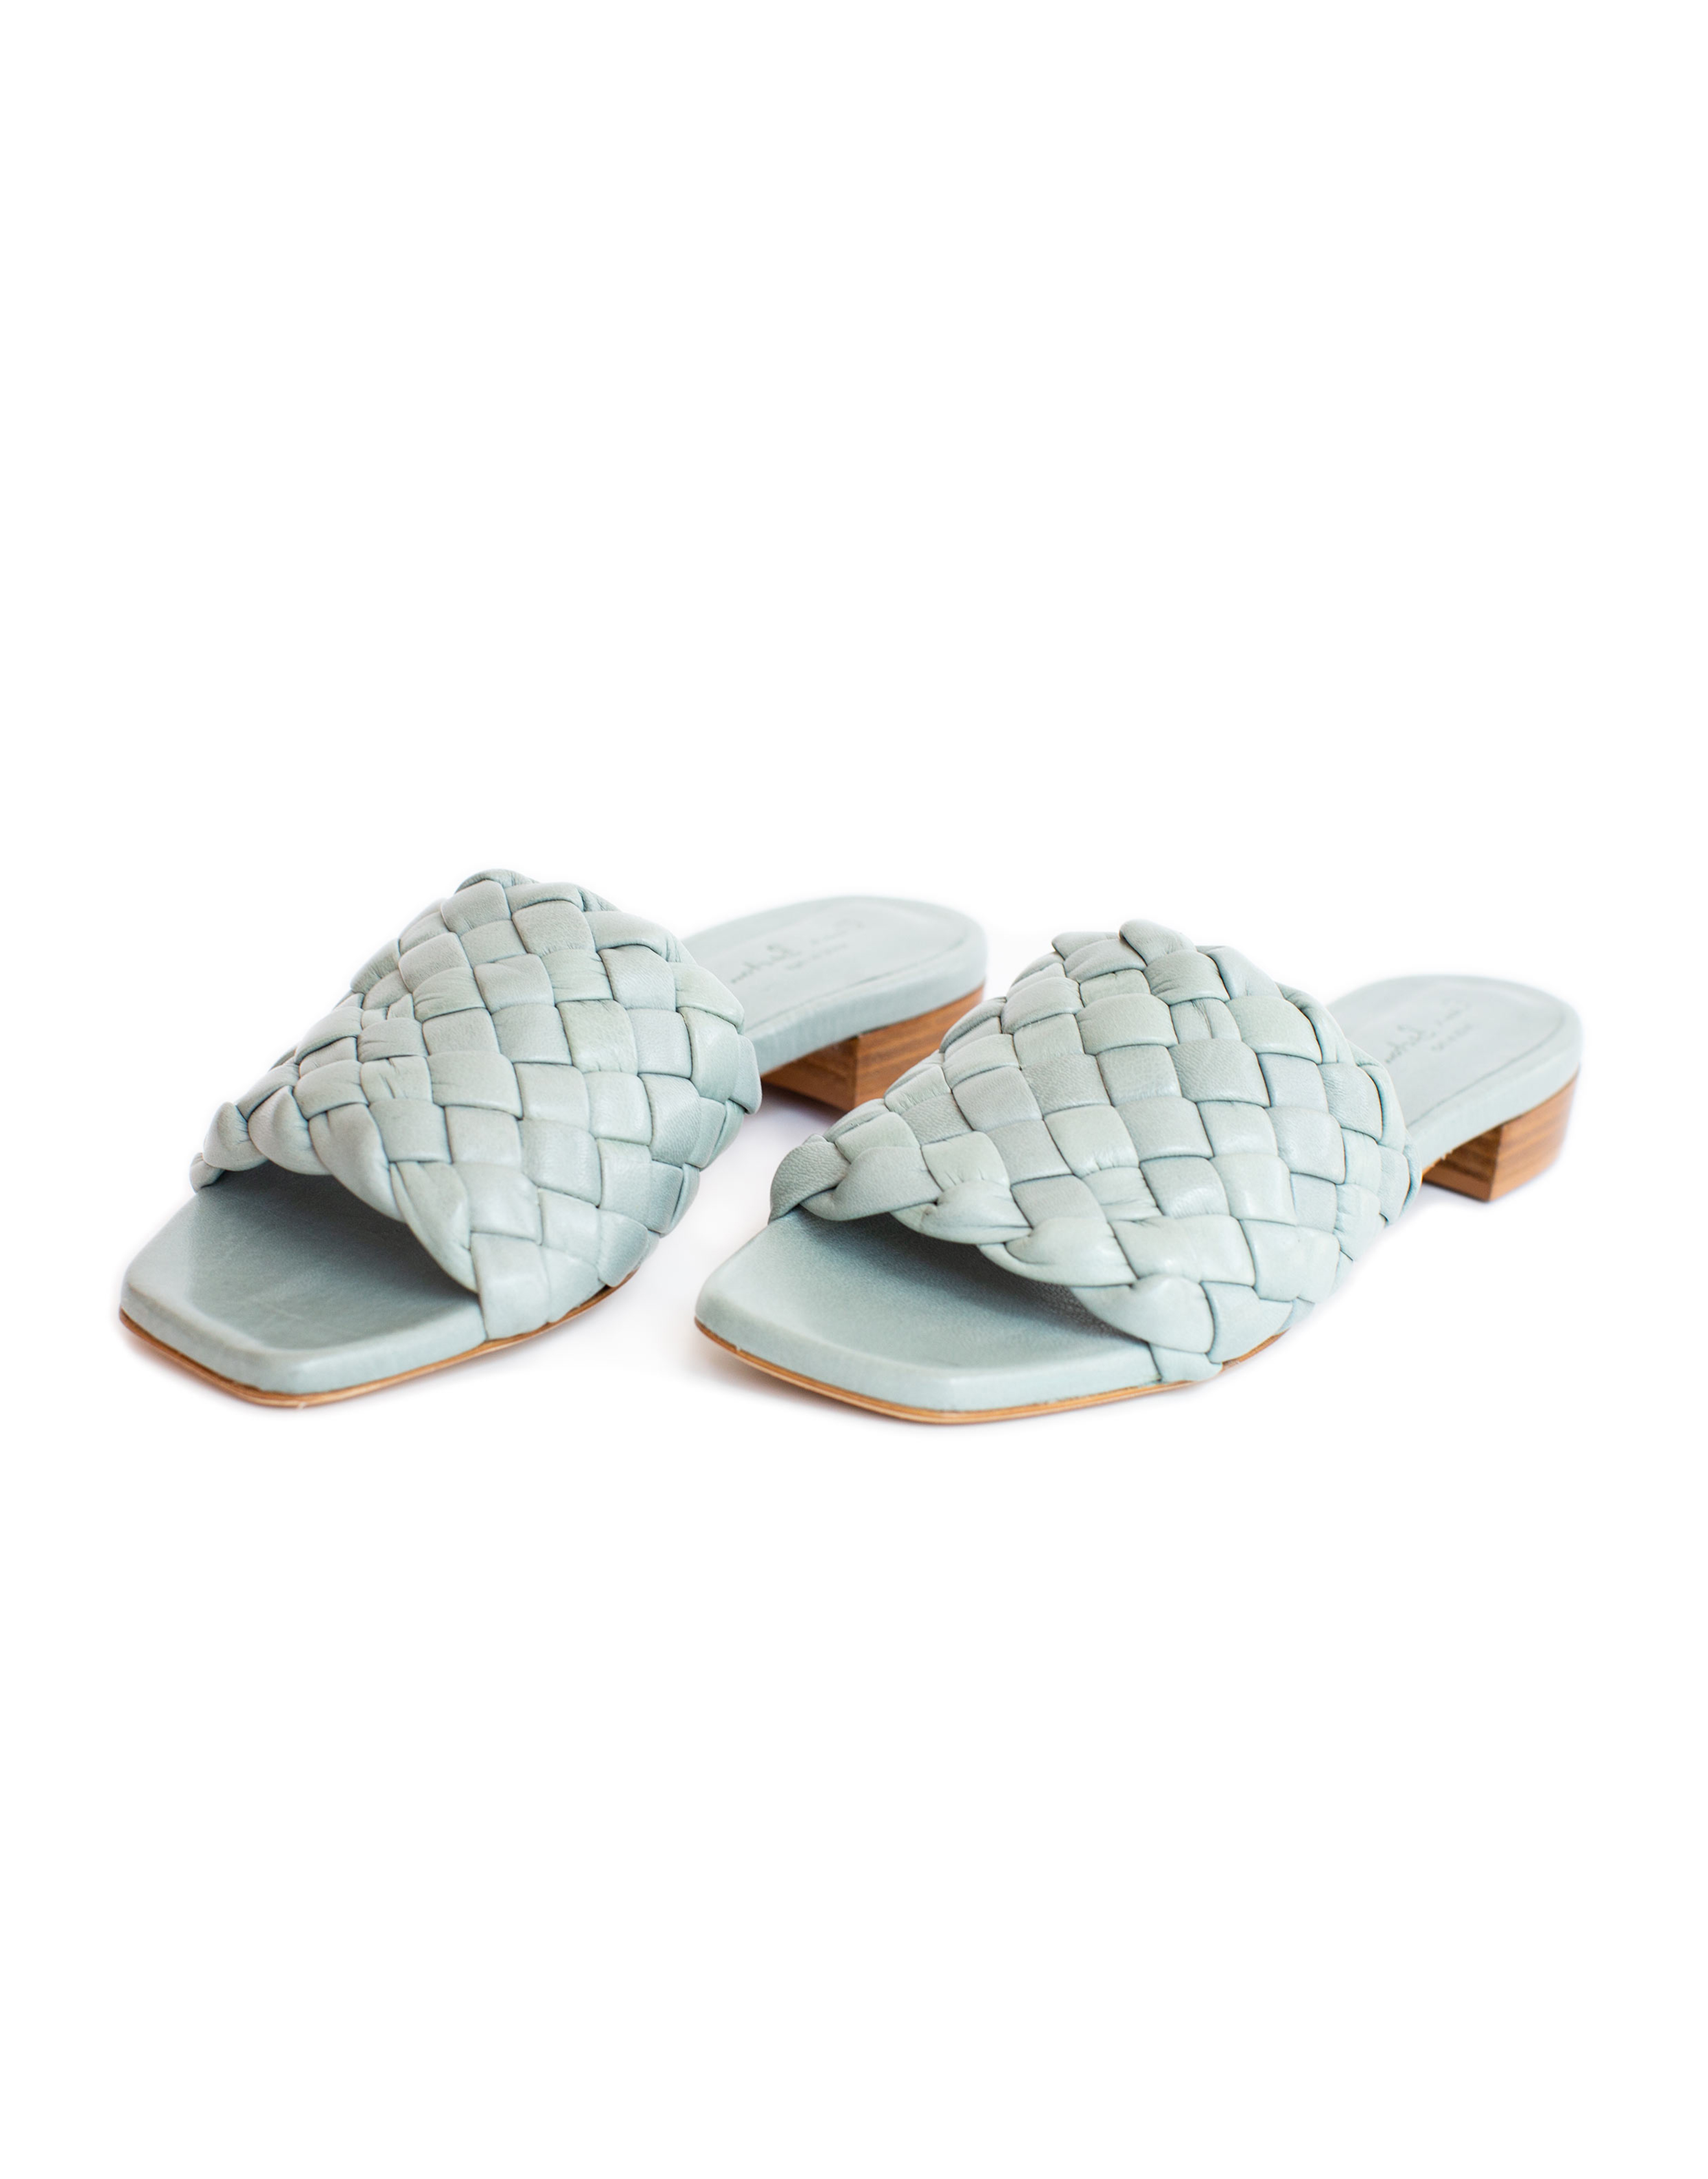 Braided leather flats, blue